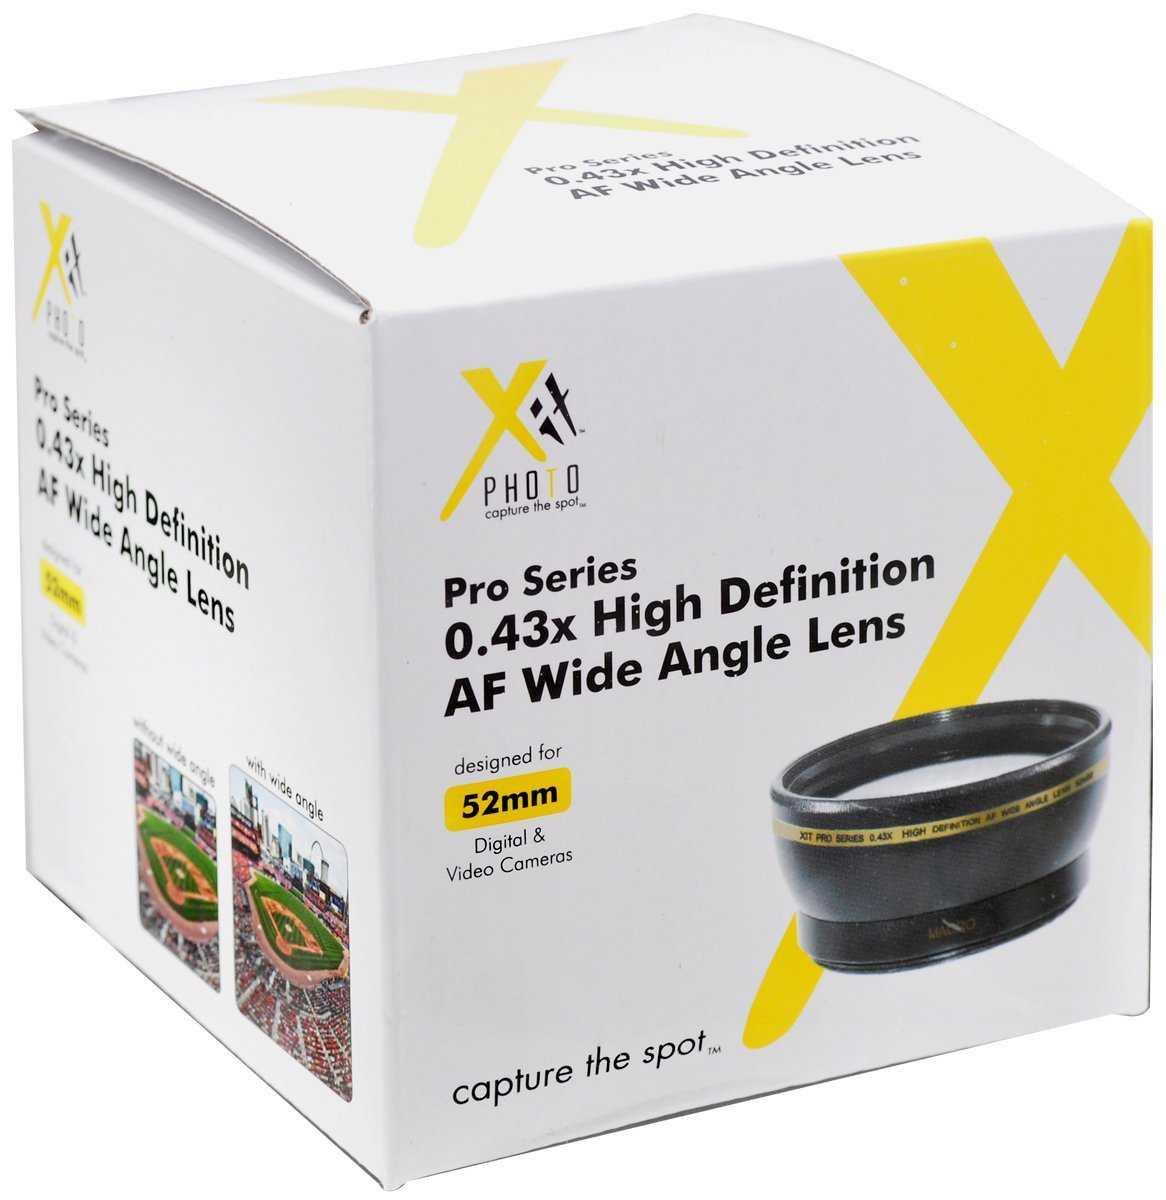 Xit 52mm 043x High Definition Af Wide Angle Lens